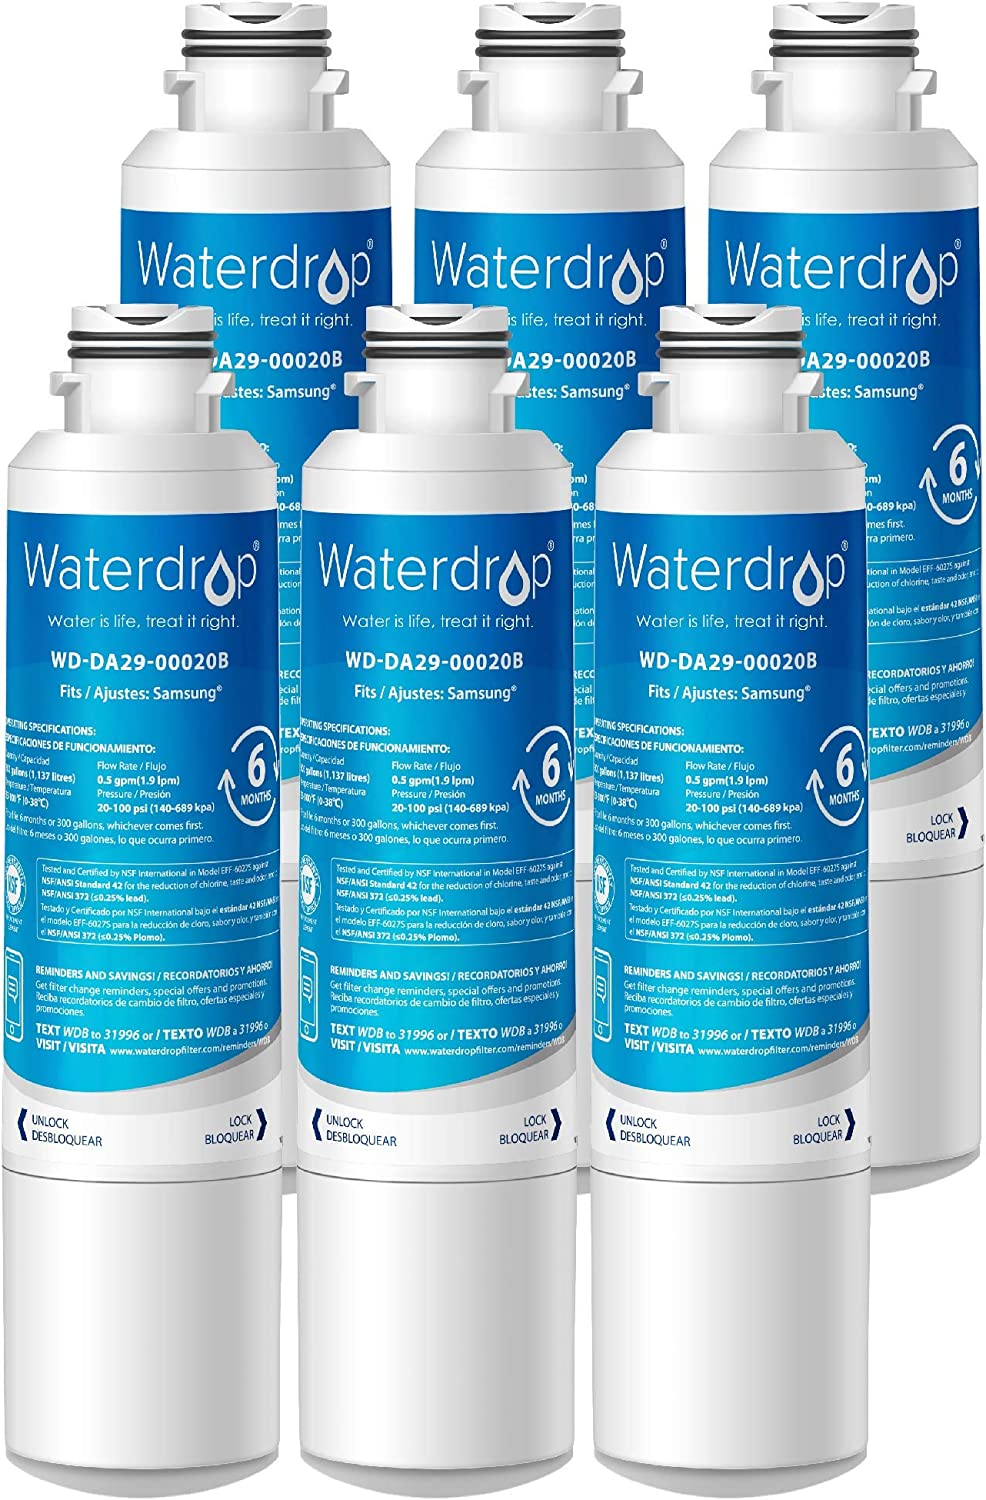 Samsung DA29-00020B Refrigerator Water Filter Replacement by Waterdrop, Compatible with Samsung DA29-00020B, DA29-00020B-1, Haf-Cin/Exp, 46-9101, RF4267HARS, 3 Filters